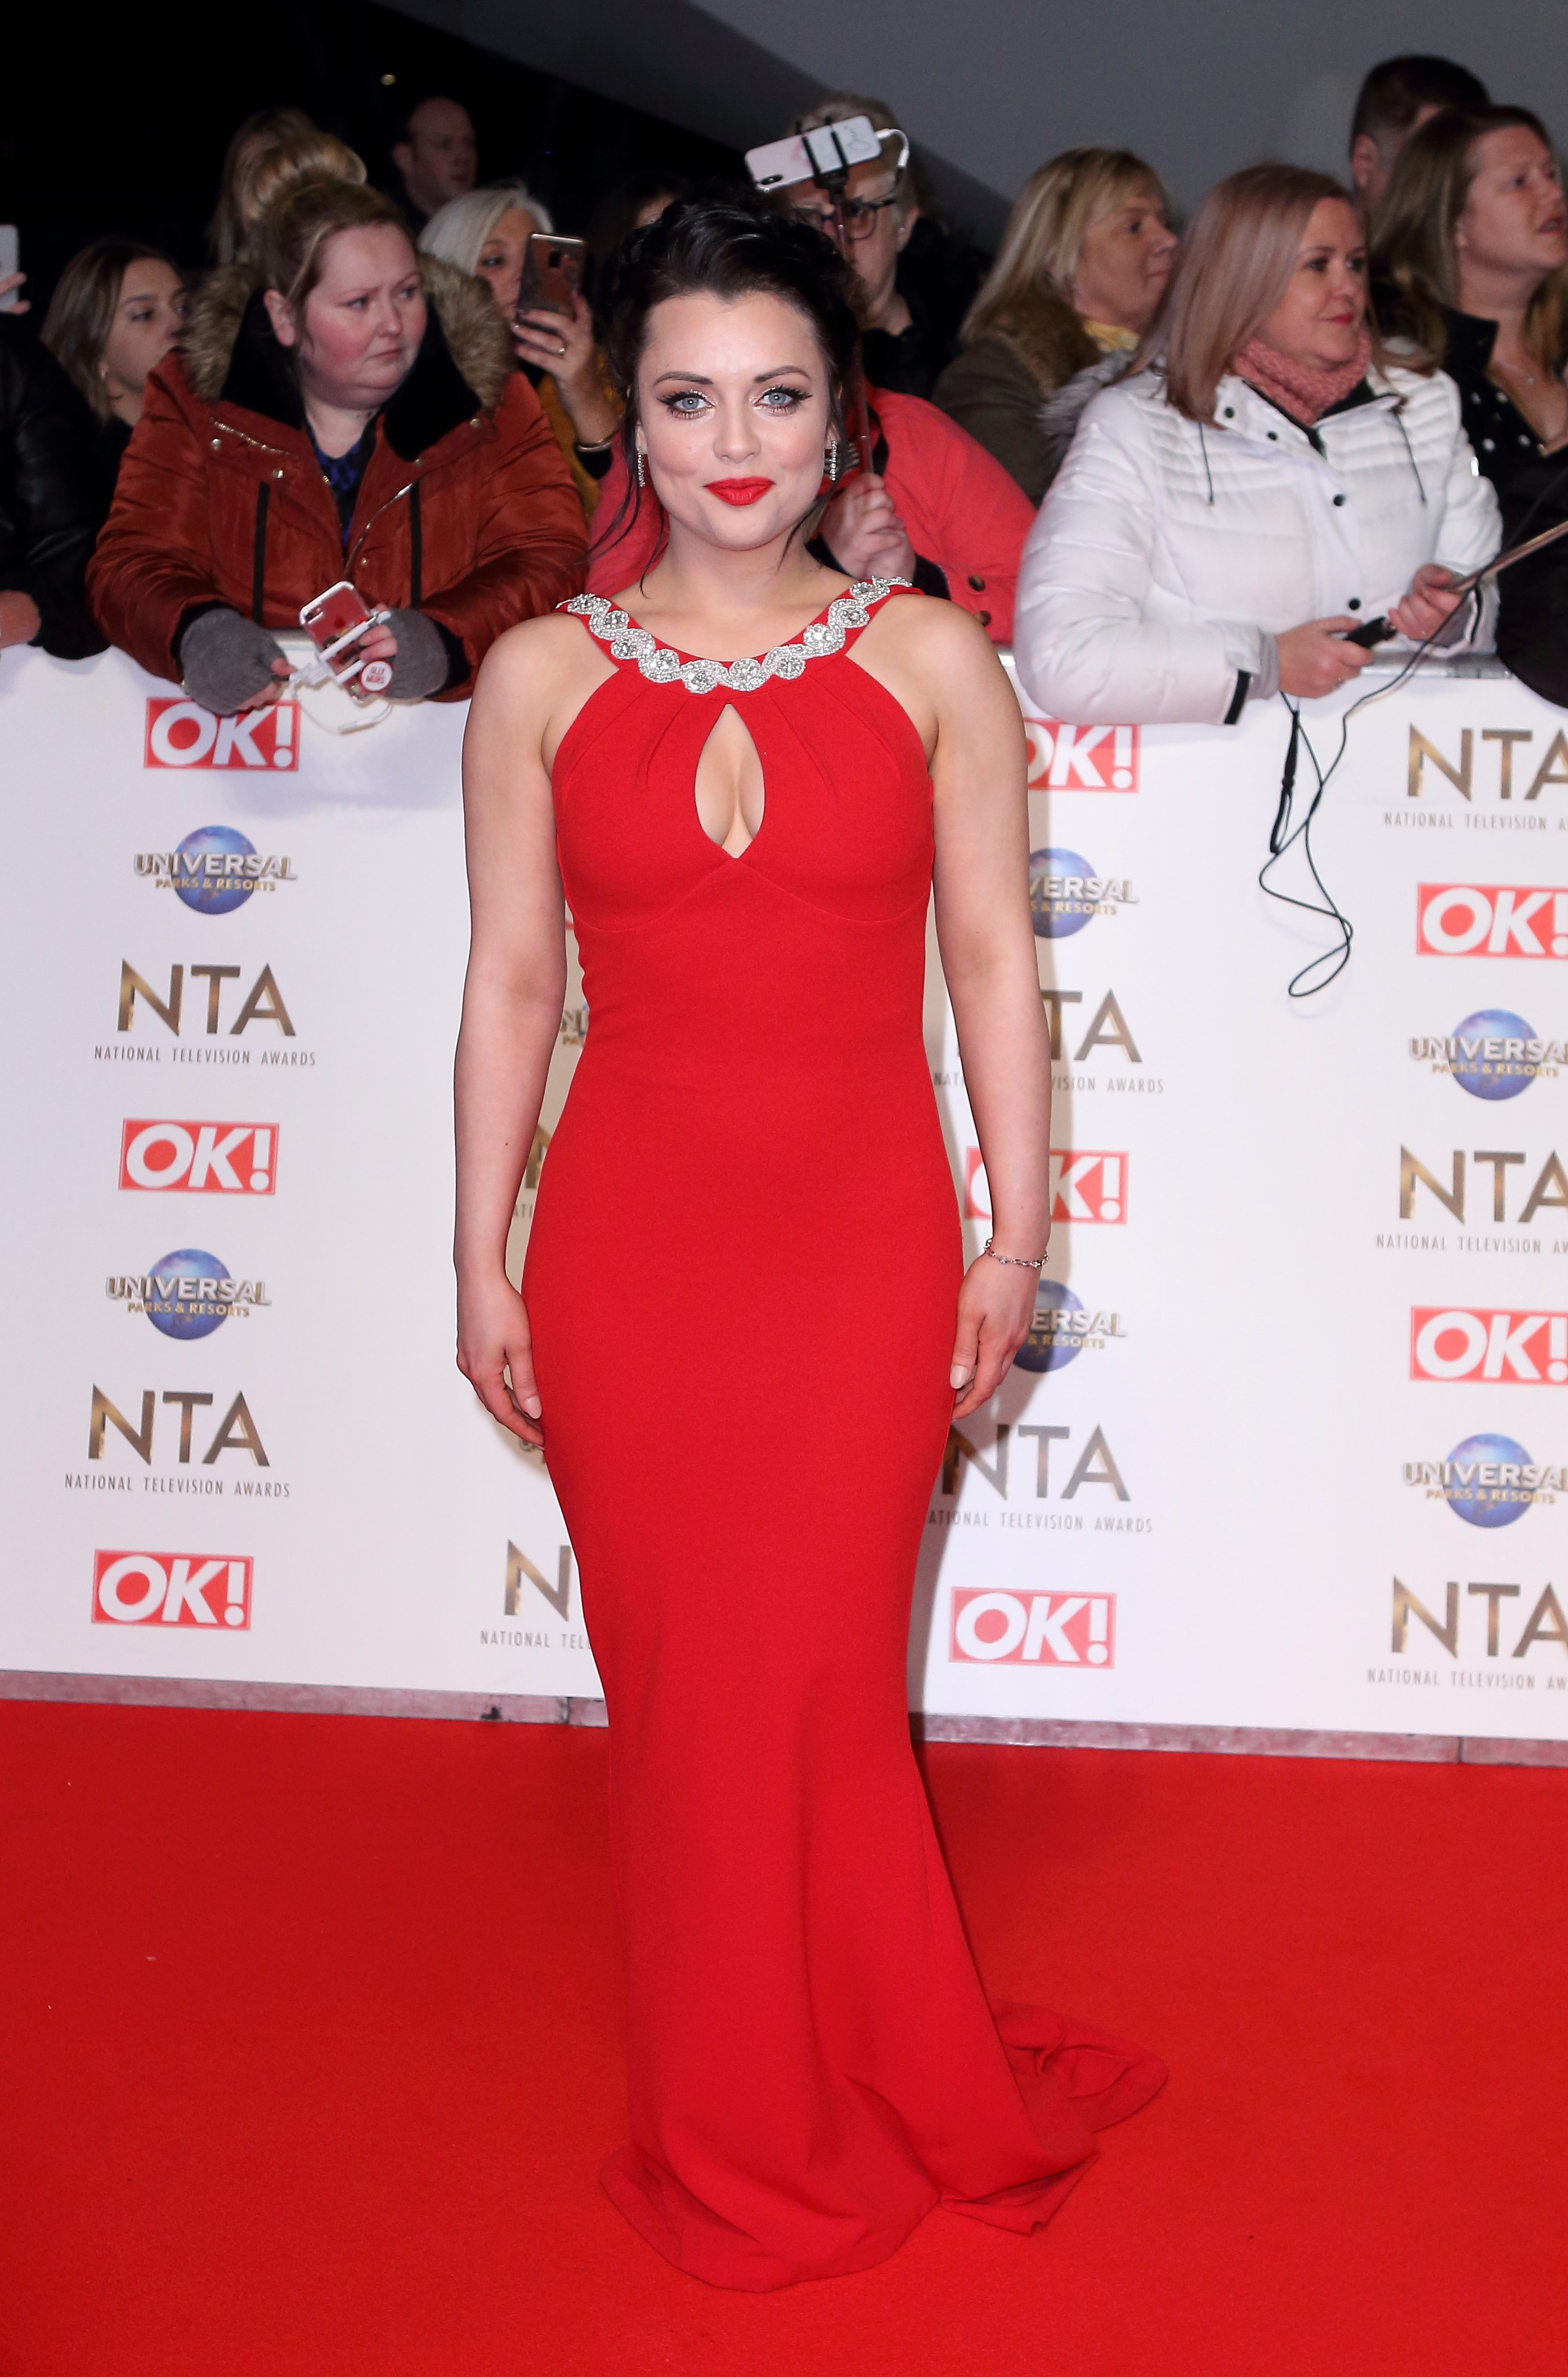 National Television Awards (NTA) 2020 Red Carpet Arrivals, O2 London Pictured: Shona McGarty Ref: SPL5143746 280120 NON-EXCLUSIVE Picture by: Grant Buchanan / SplashNews.com Splash News and Pictures Los Angeles: 310-821-2666 New York: 212-619-2666 London: +44 (0)20 7644 7656 Berlin: +49 175 3764 166 photodesk@splashnews.com World Rights